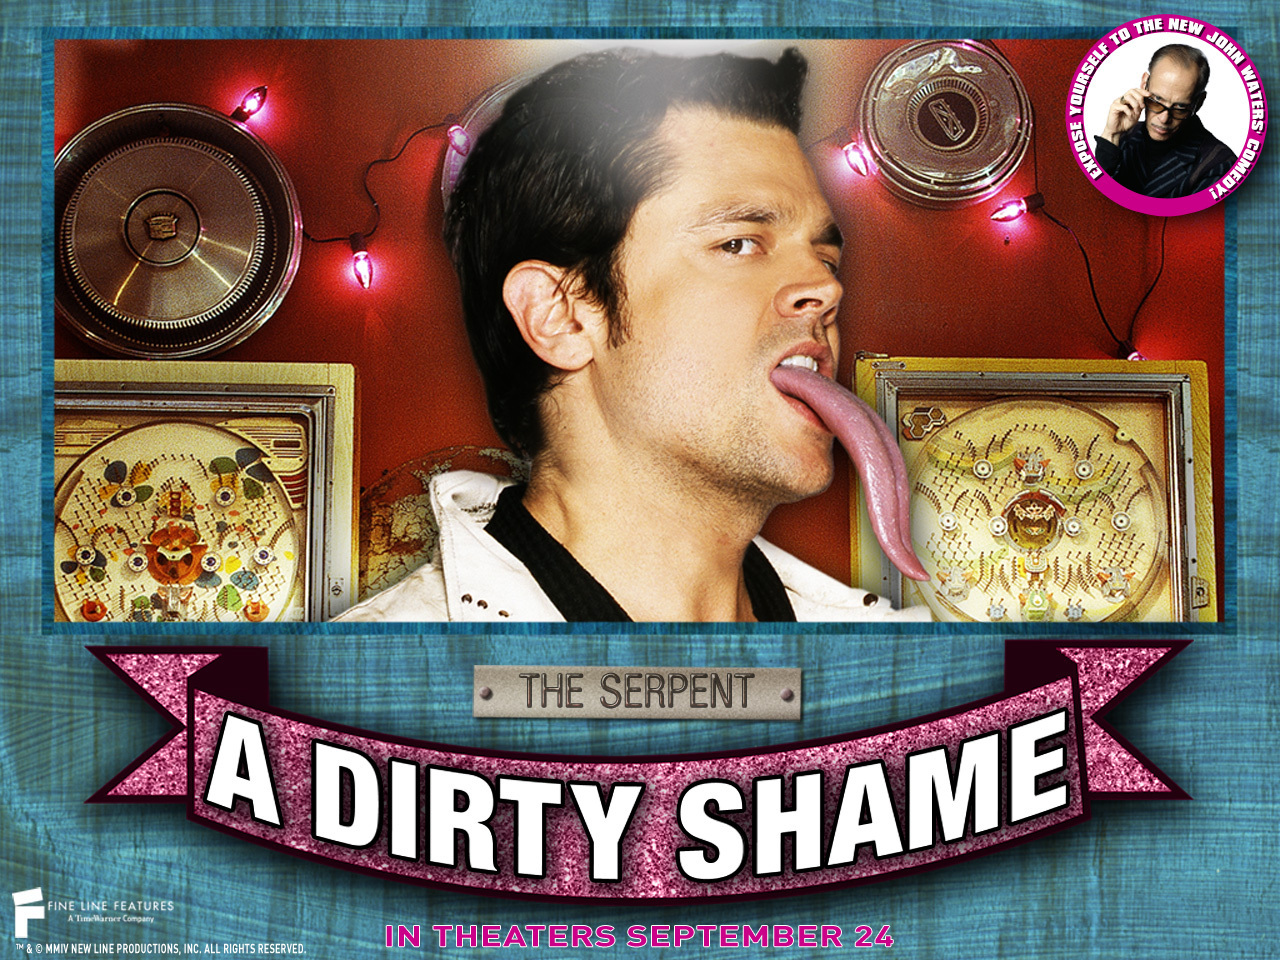 Johnny Knoxville - A Dirty Shame